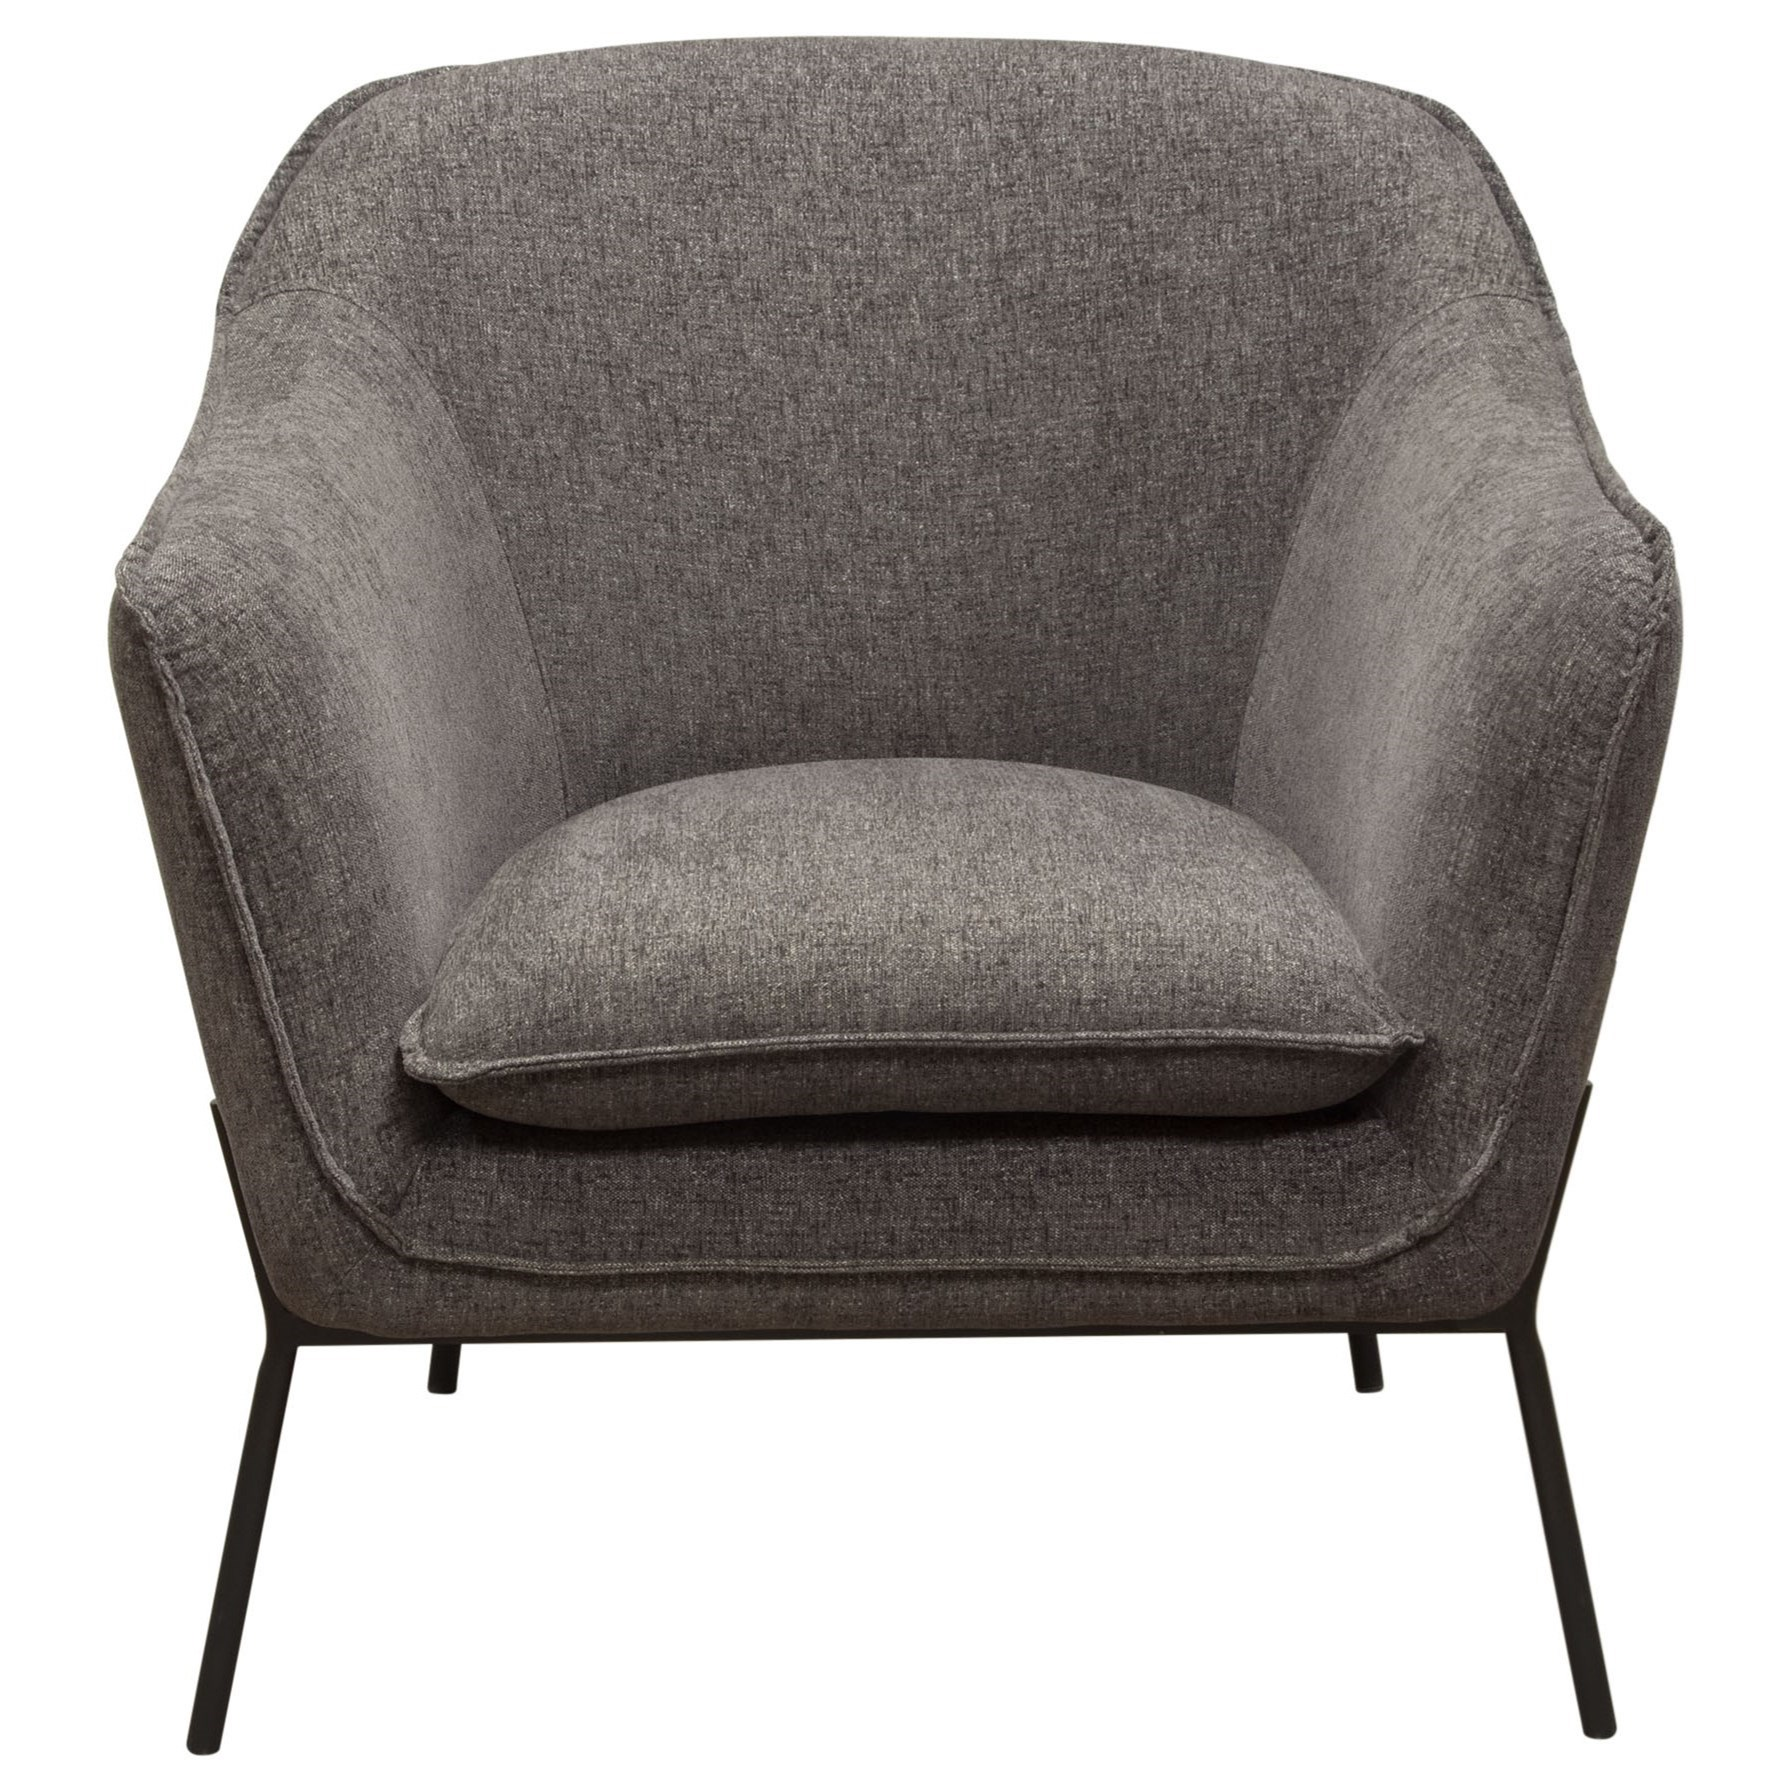 Diamond Sofa Status Chair Red Knot Upholstered Chairs